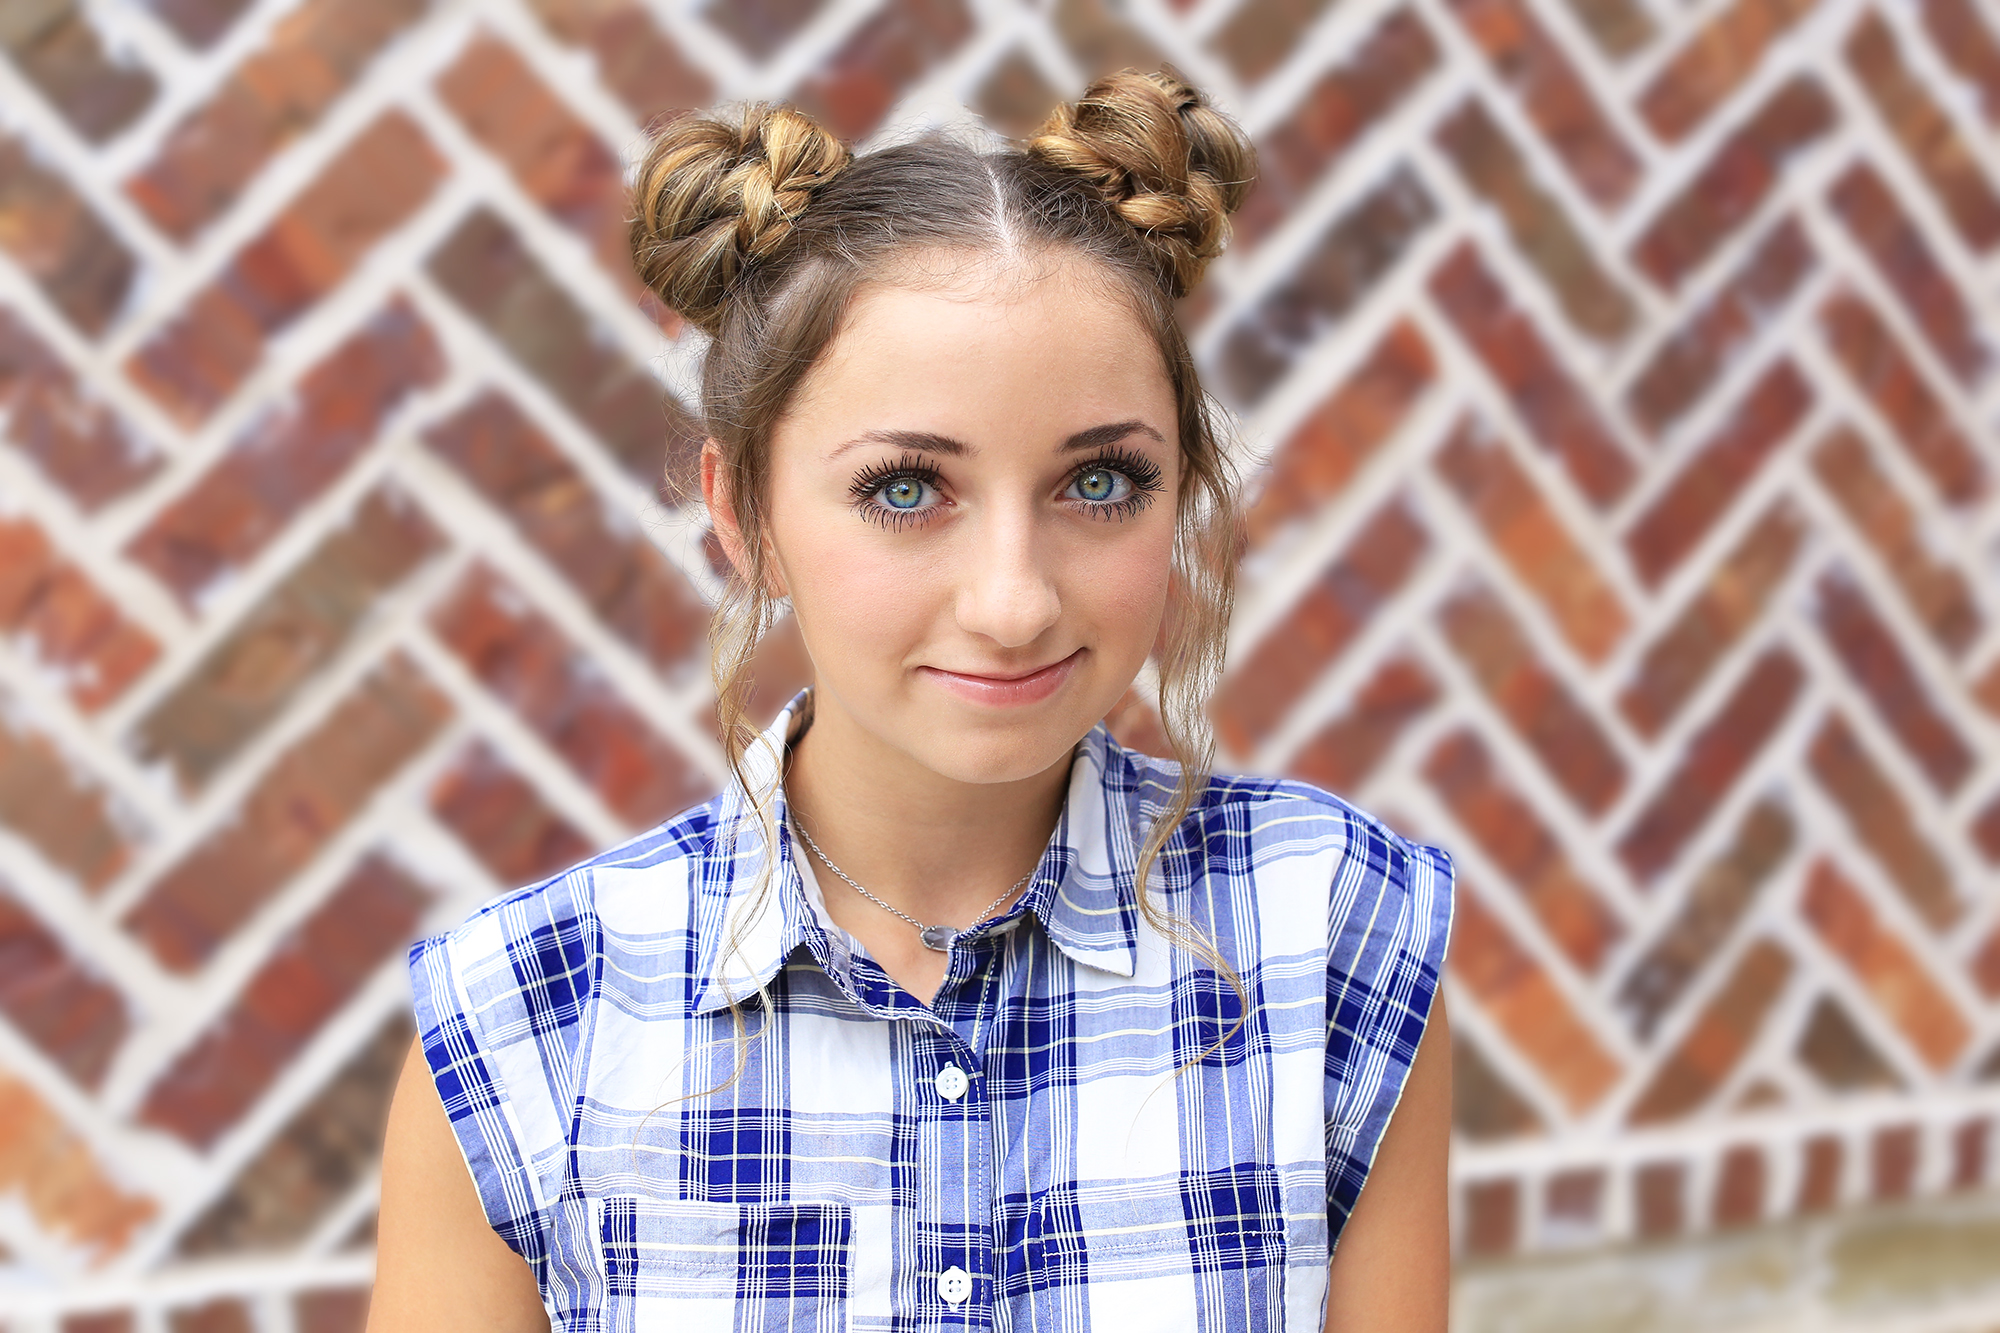 Space buns for school how-to